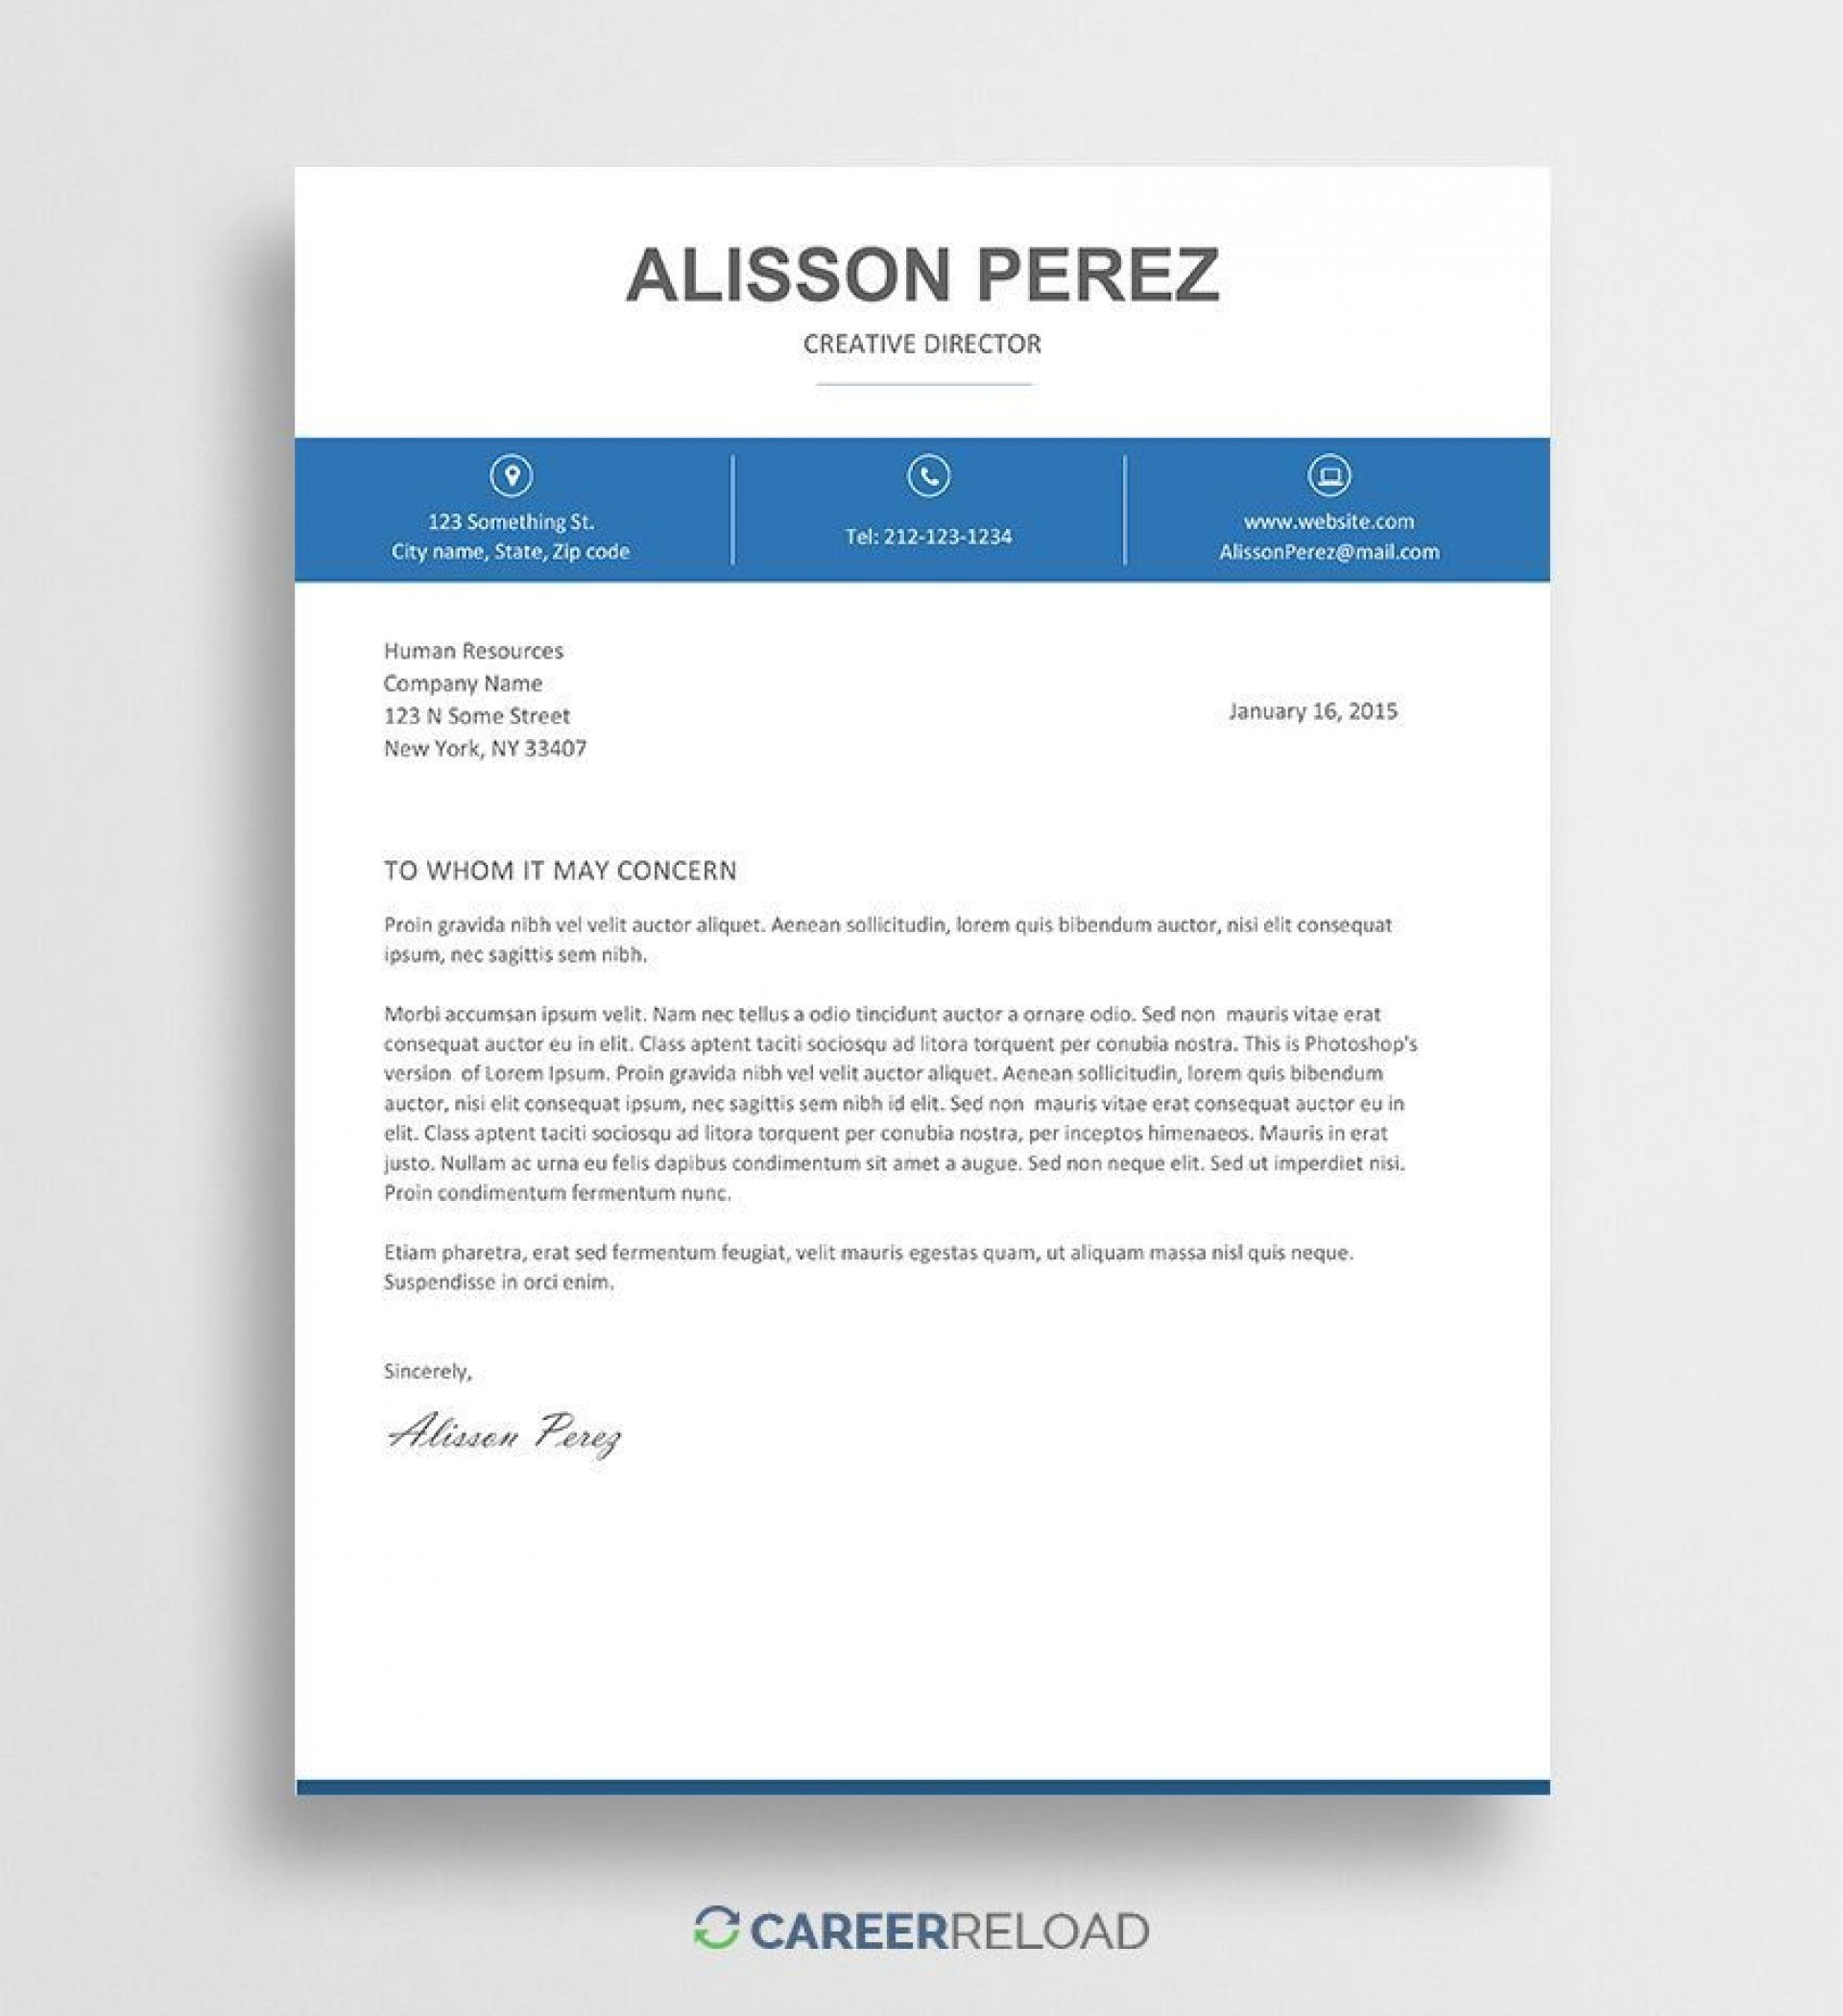 000 Stunning Download Free Cover Letter Template Word High Resolution  Microsoft Document Modern1920